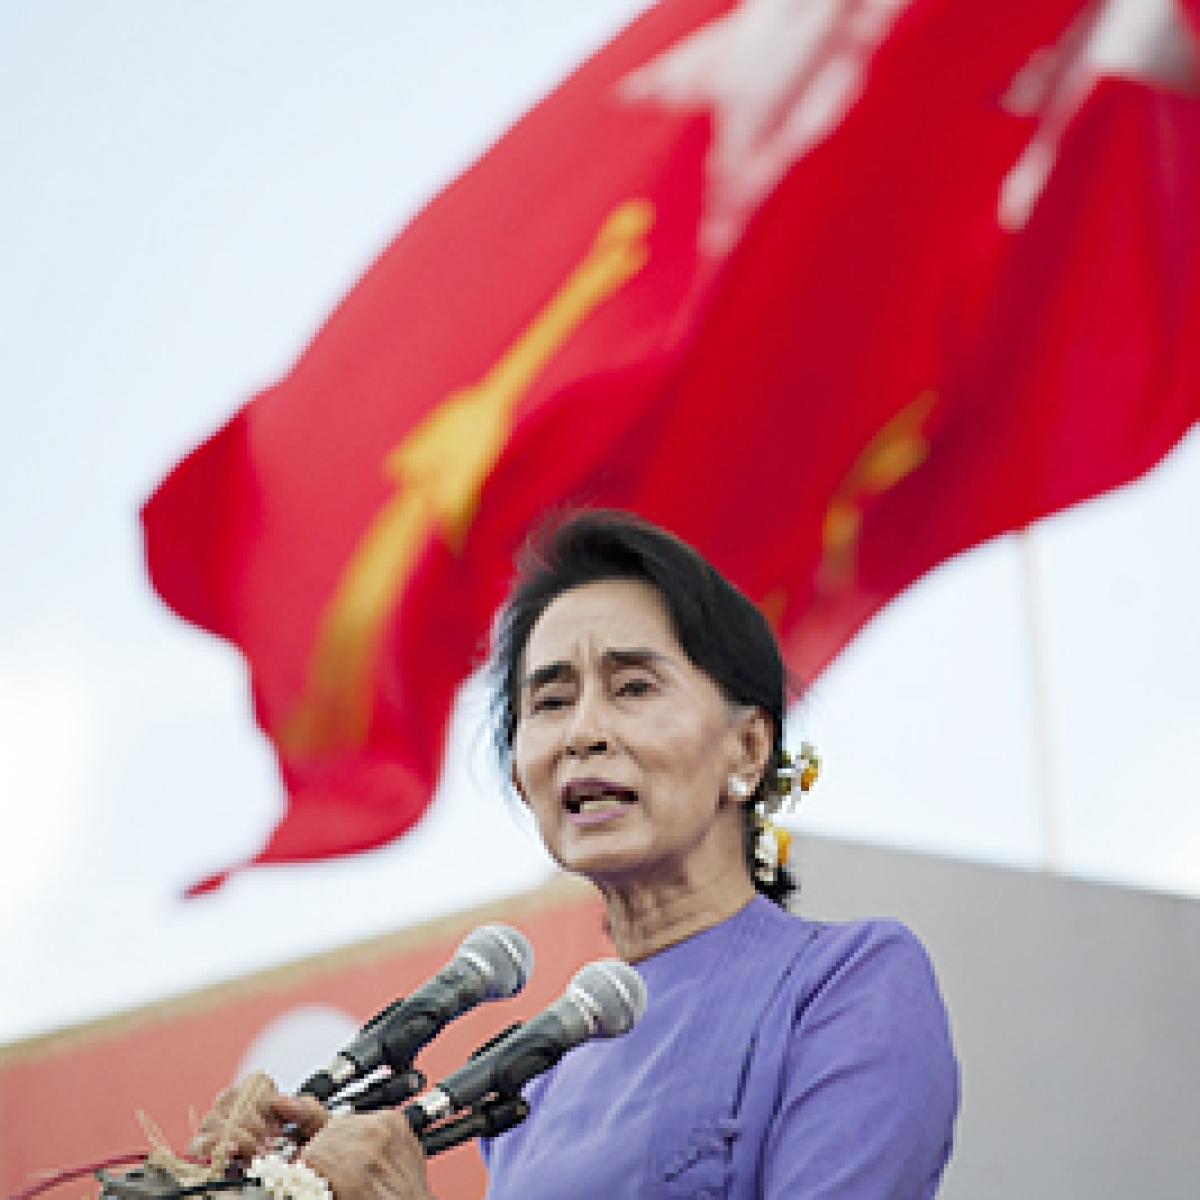 Aung San Suu Kyi rejects genocide claims against Myanmar